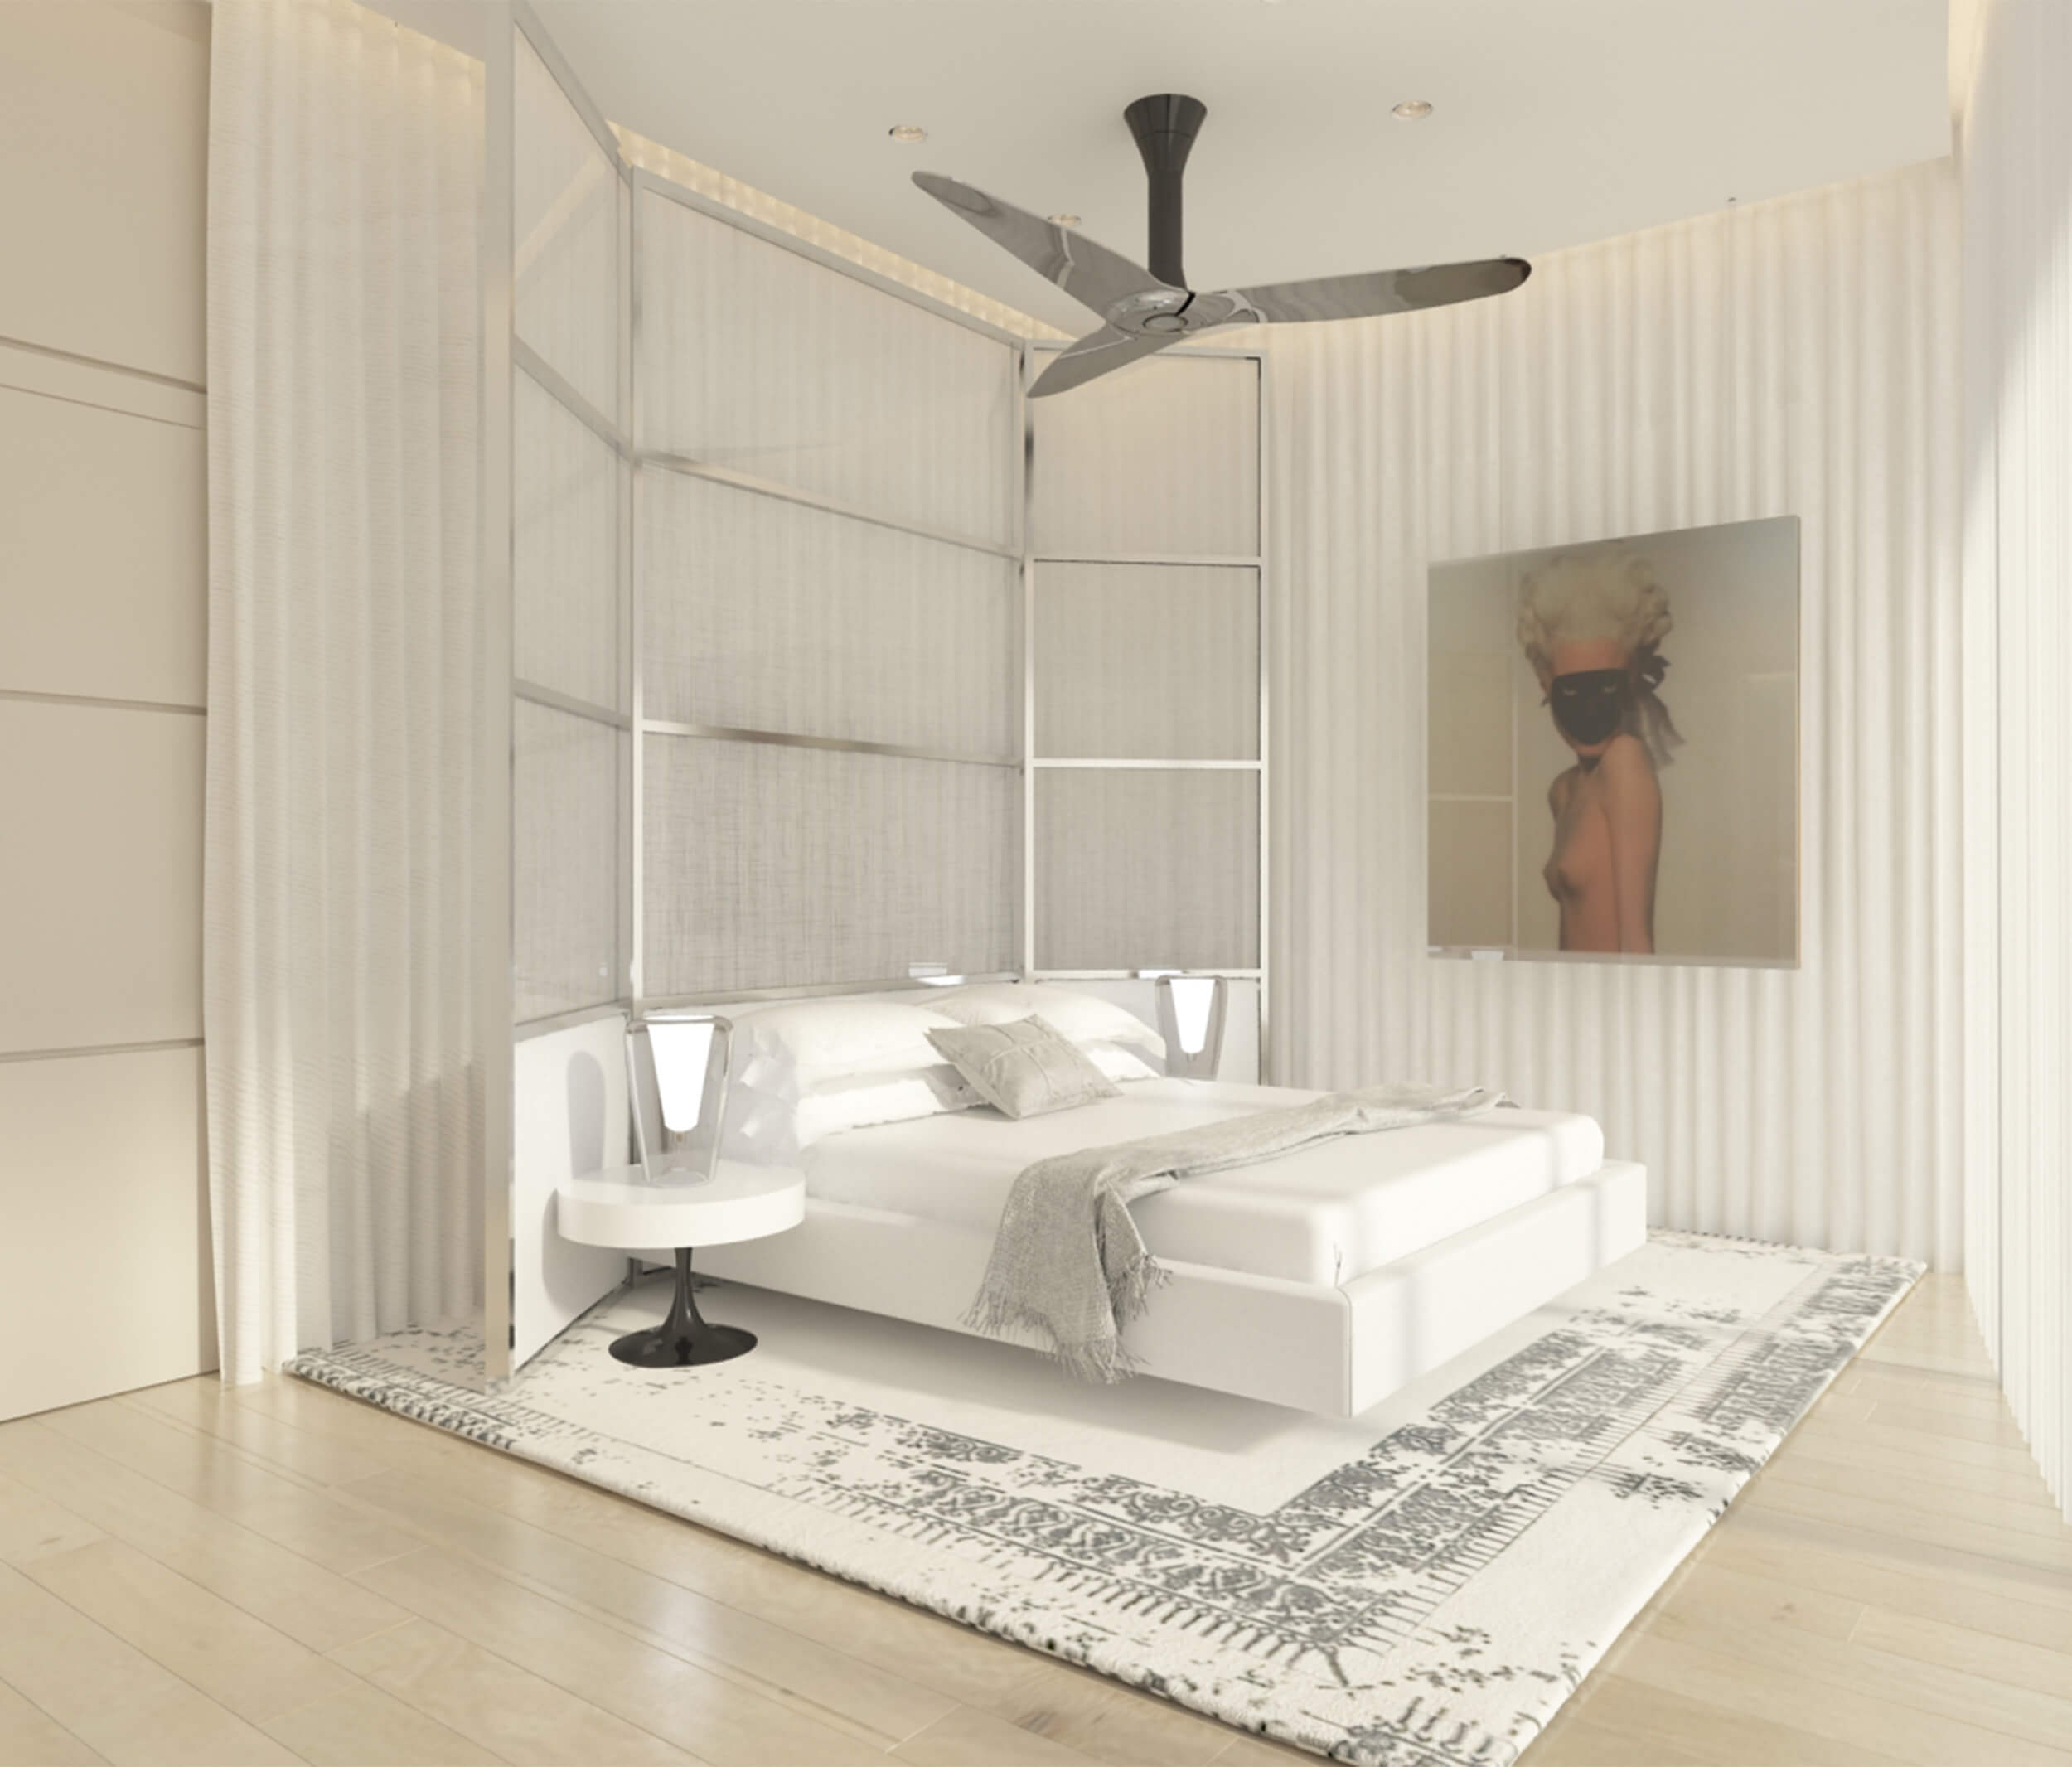 Bedroom design by Britto Charette for the PH at Ritz Carlton Residences in Sunny Isles Beach